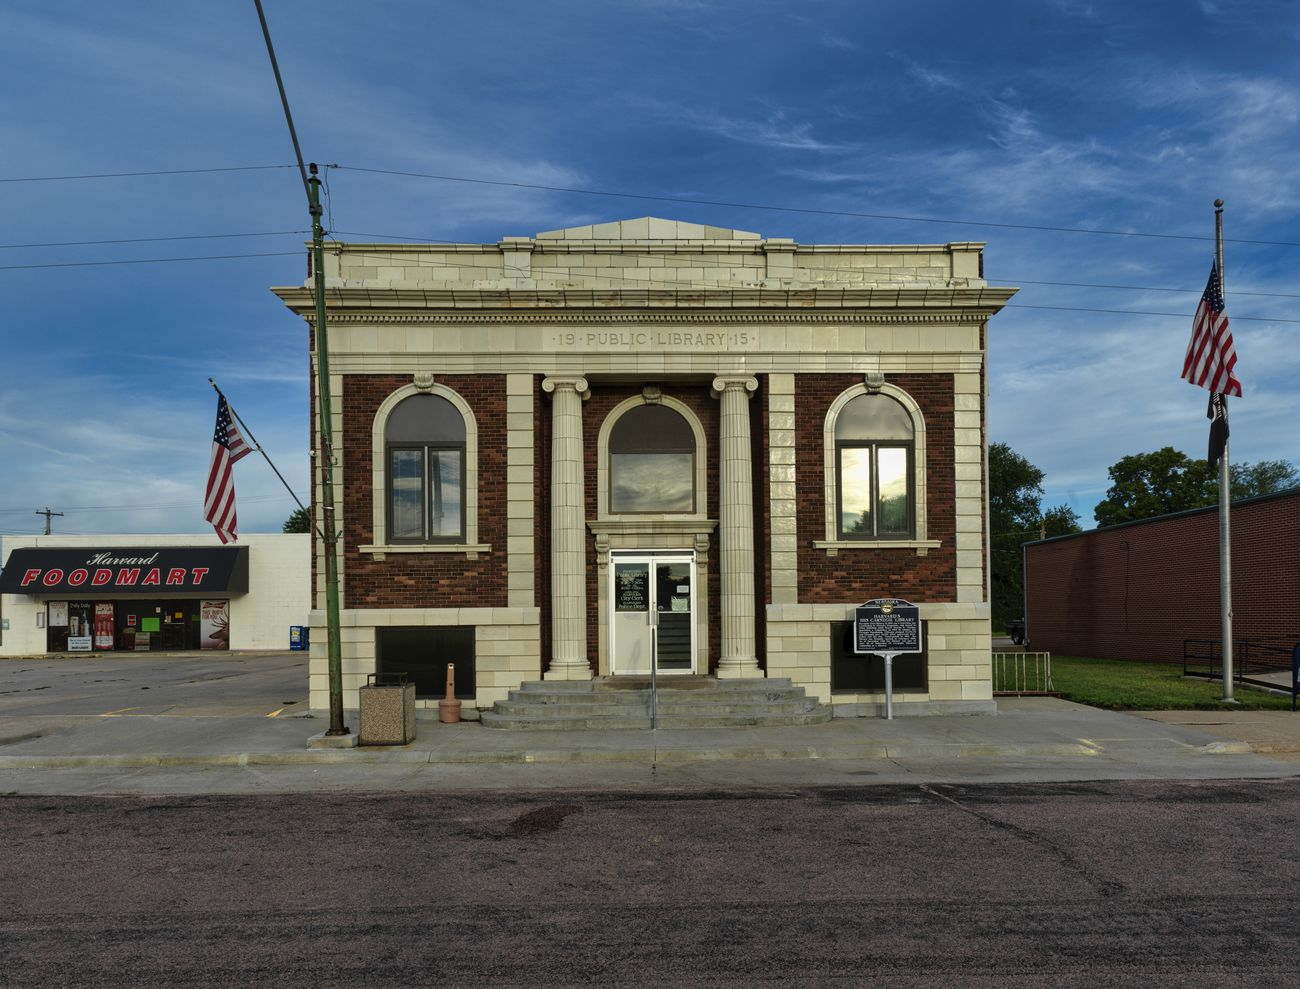 Harvard Carnegie Public Library was